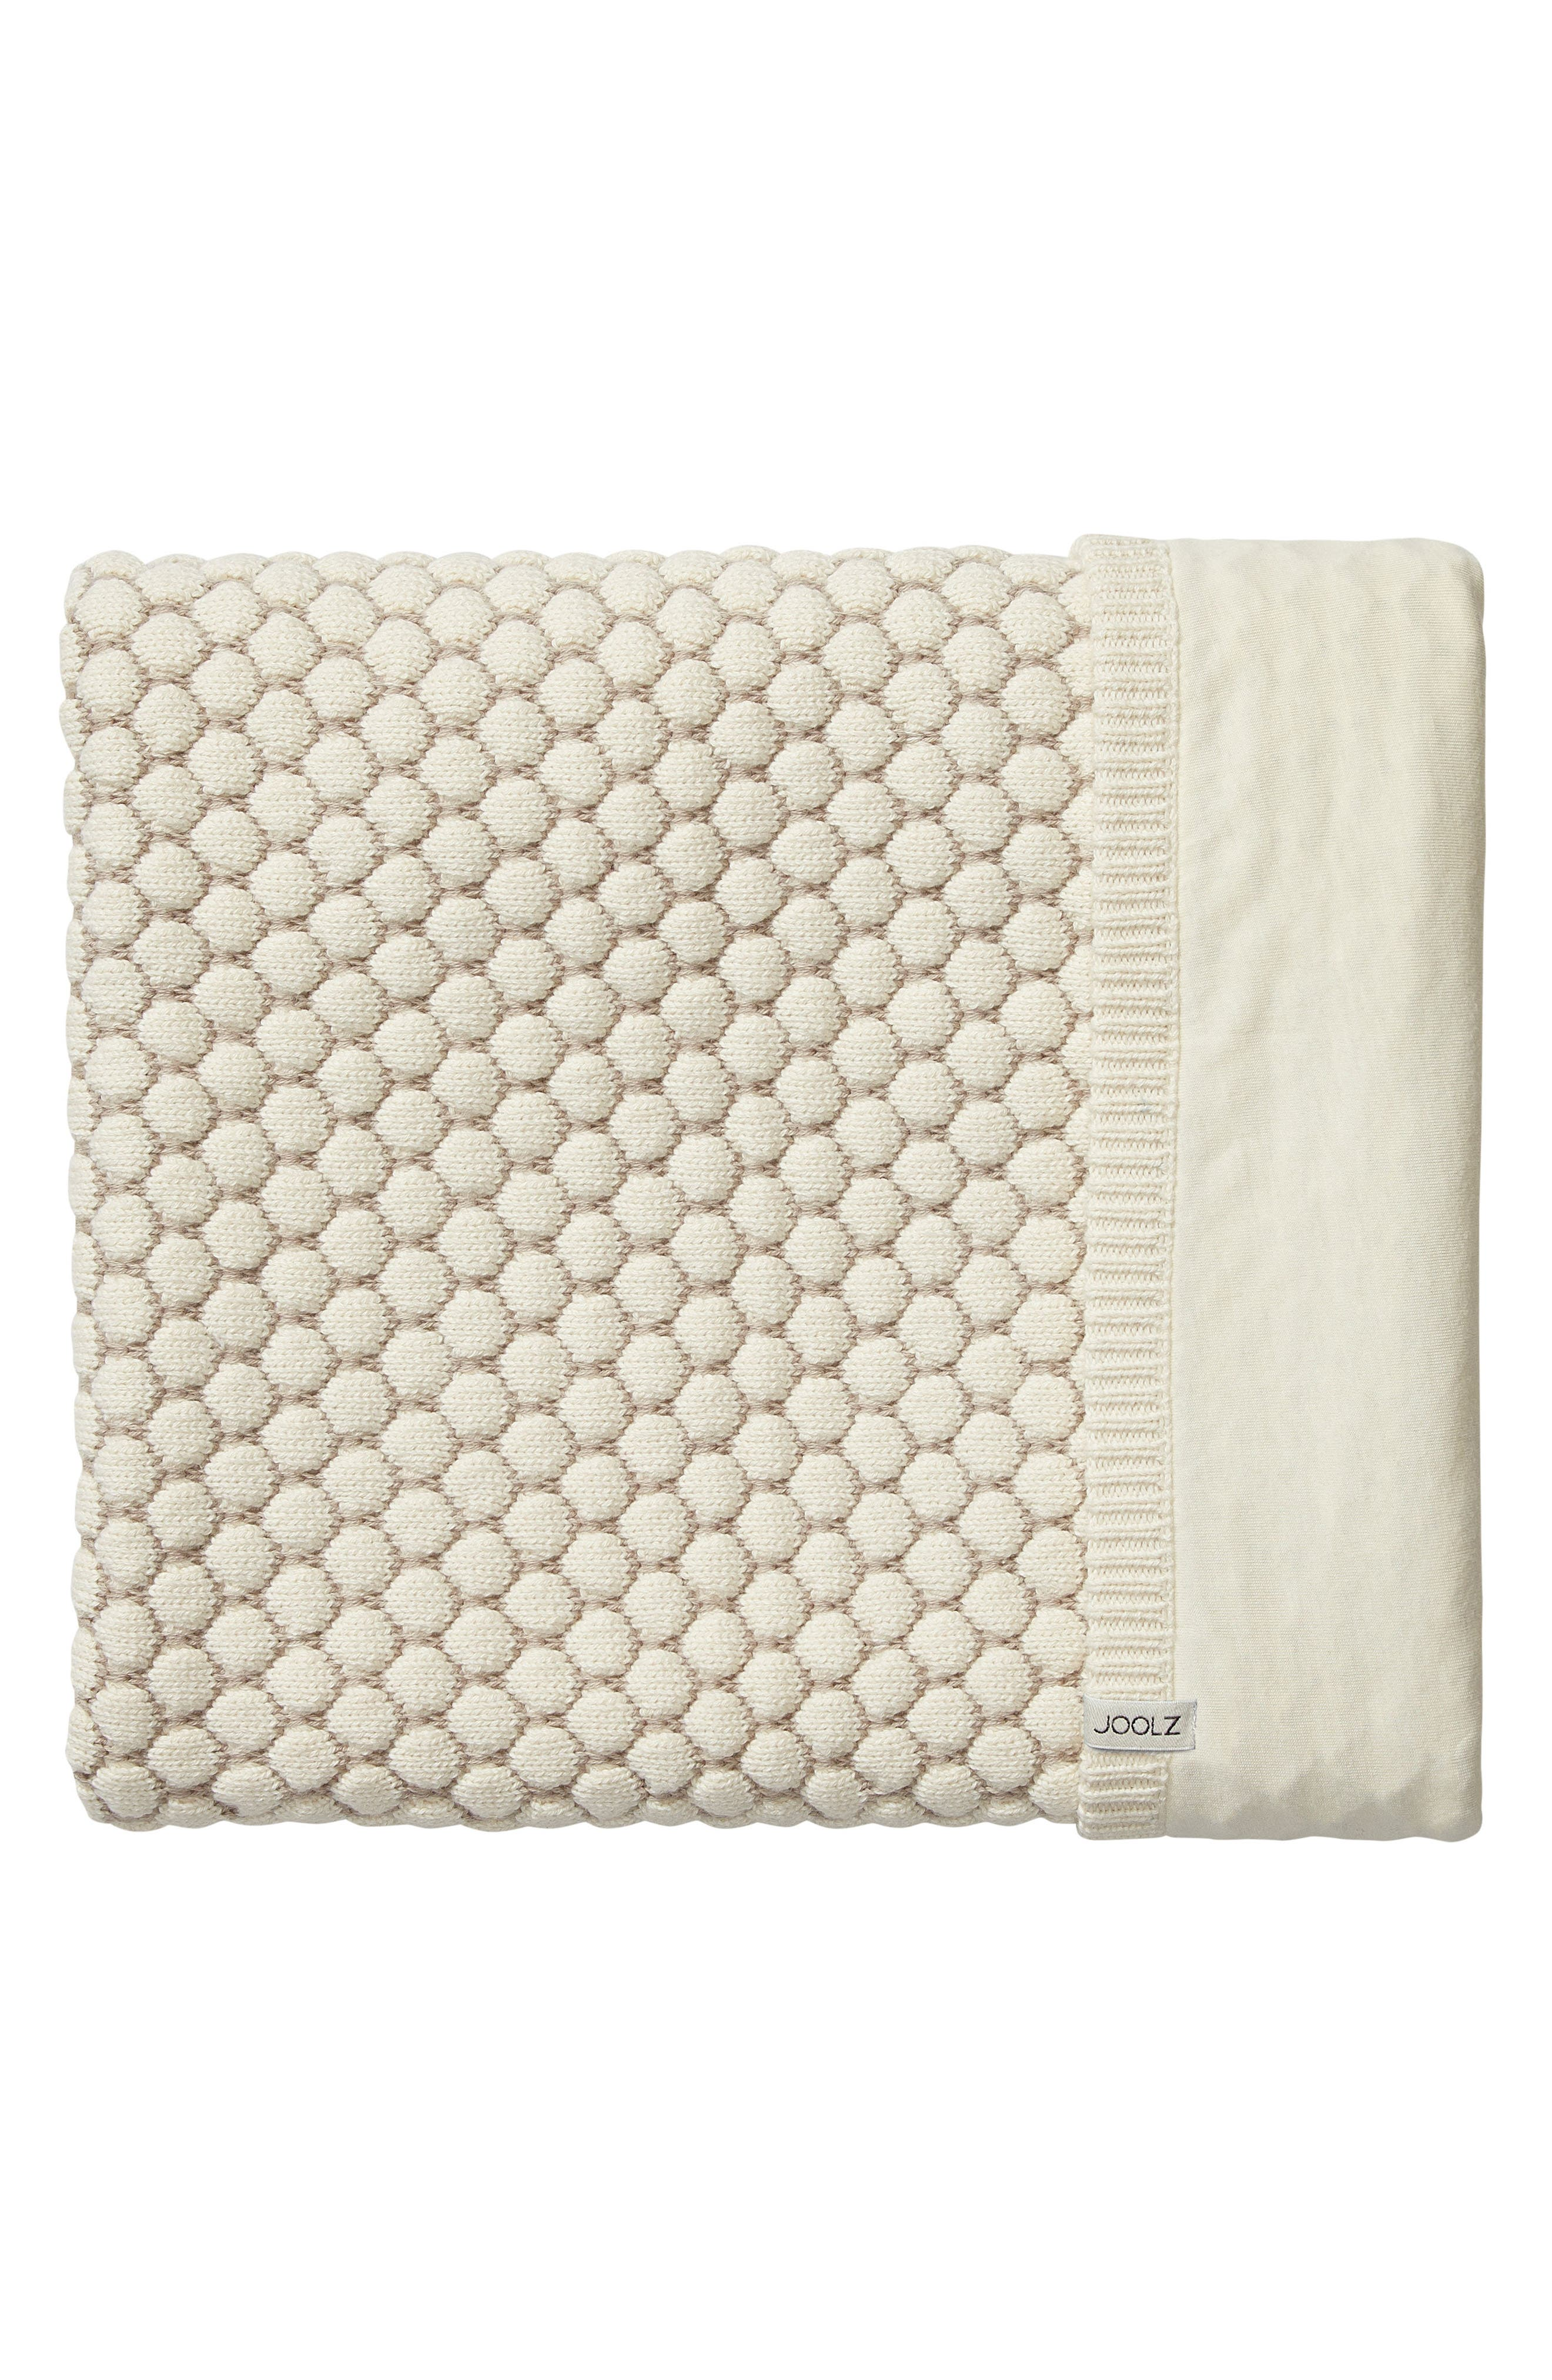 Essentials Honeycomb Organic Cotton Blanket,                             Main thumbnail 1, color,                             Off White